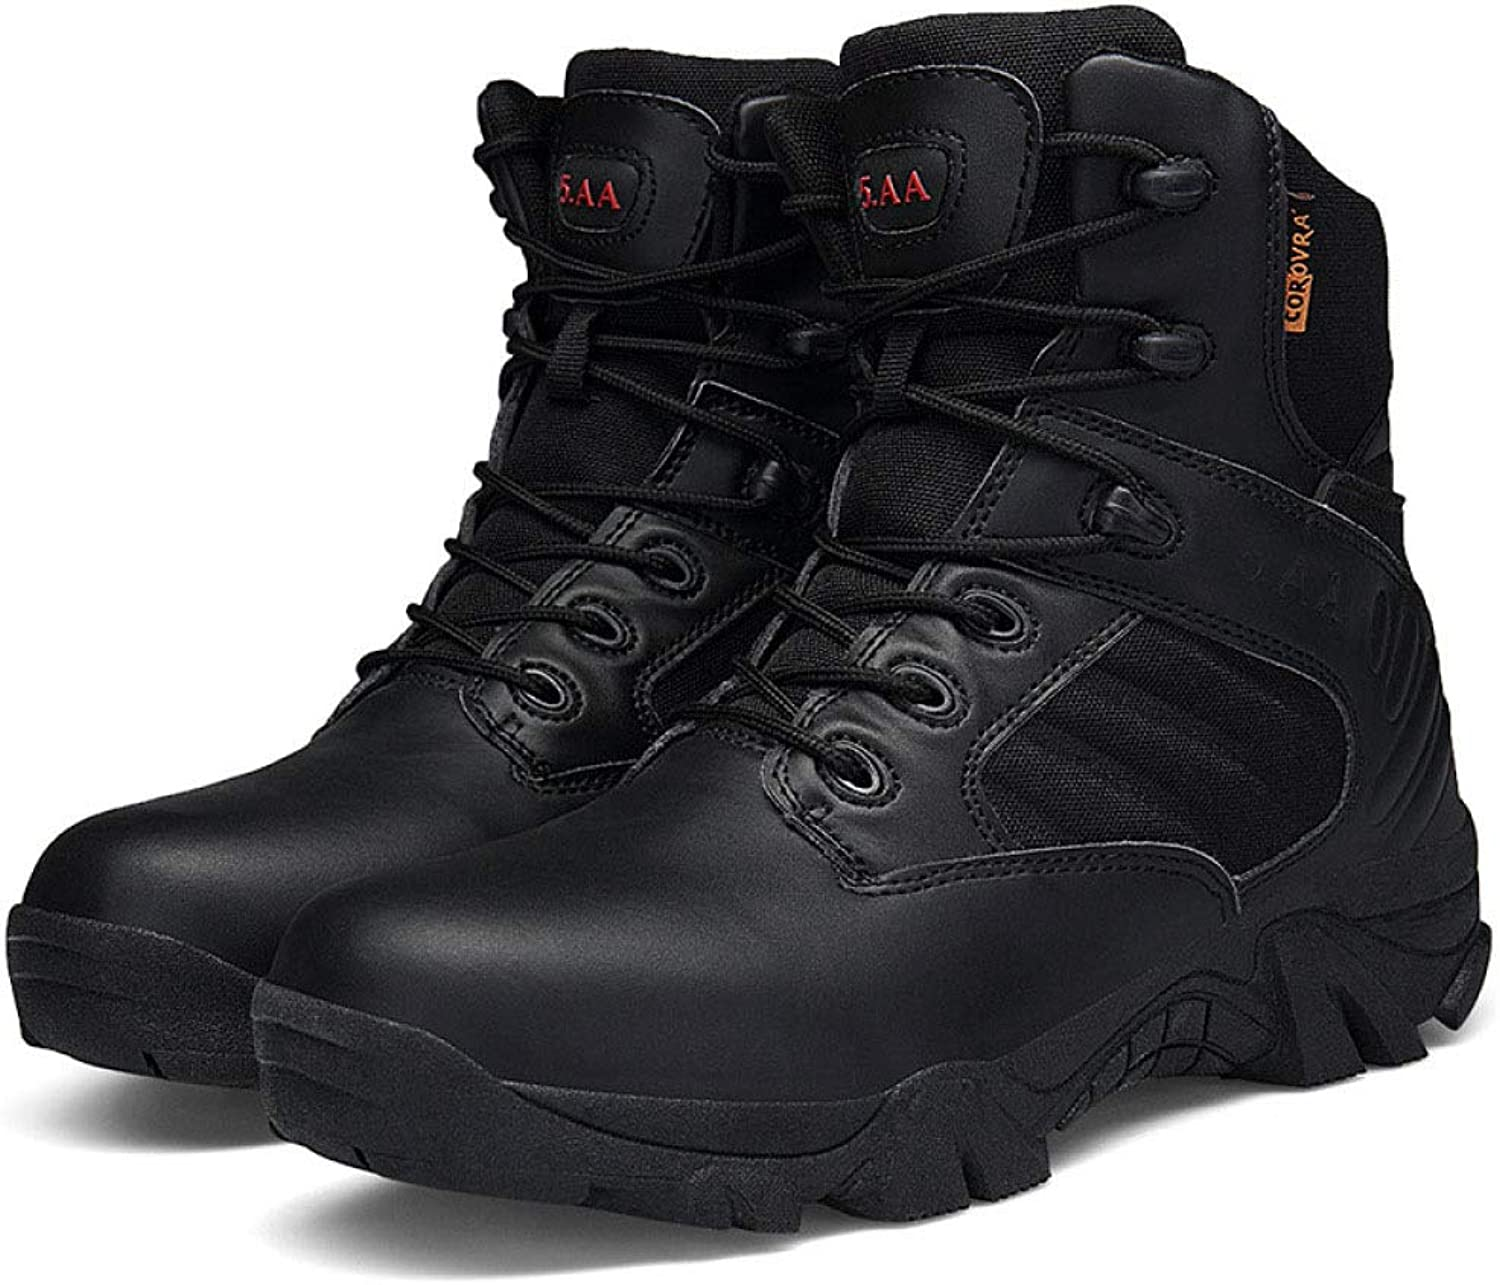 Men's Boots Tactical Boots Military Boots For Hiking Breathable Combat Boots